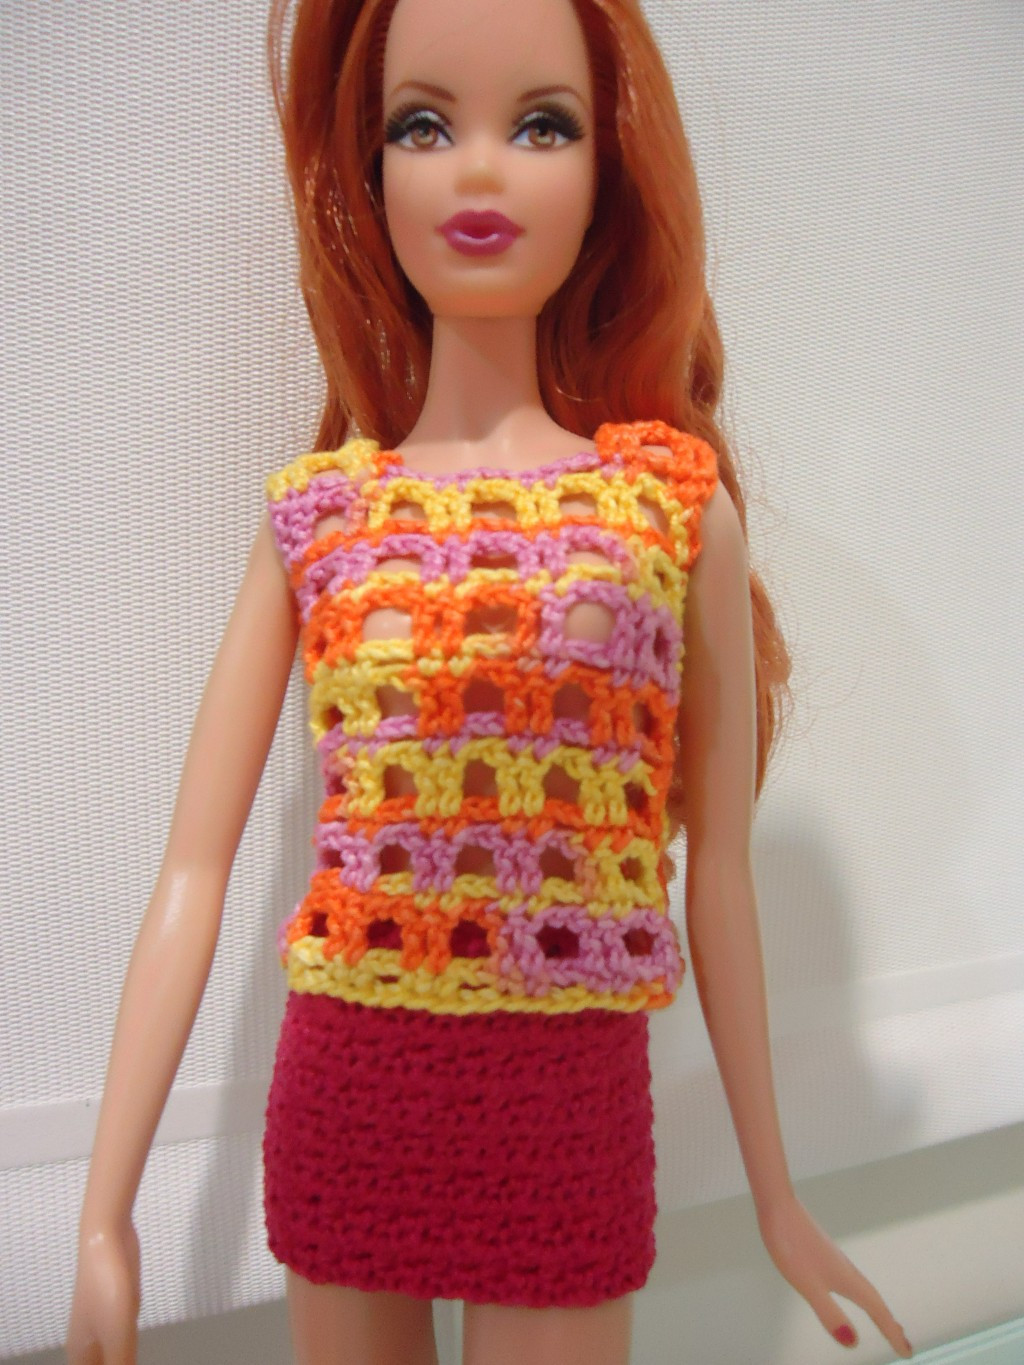 Awesome Barbie Lace Casual top and Mini Skirt Free Crochet Barbie Doll Patterns Of Superb 40 Pics Barbie Doll Patterns